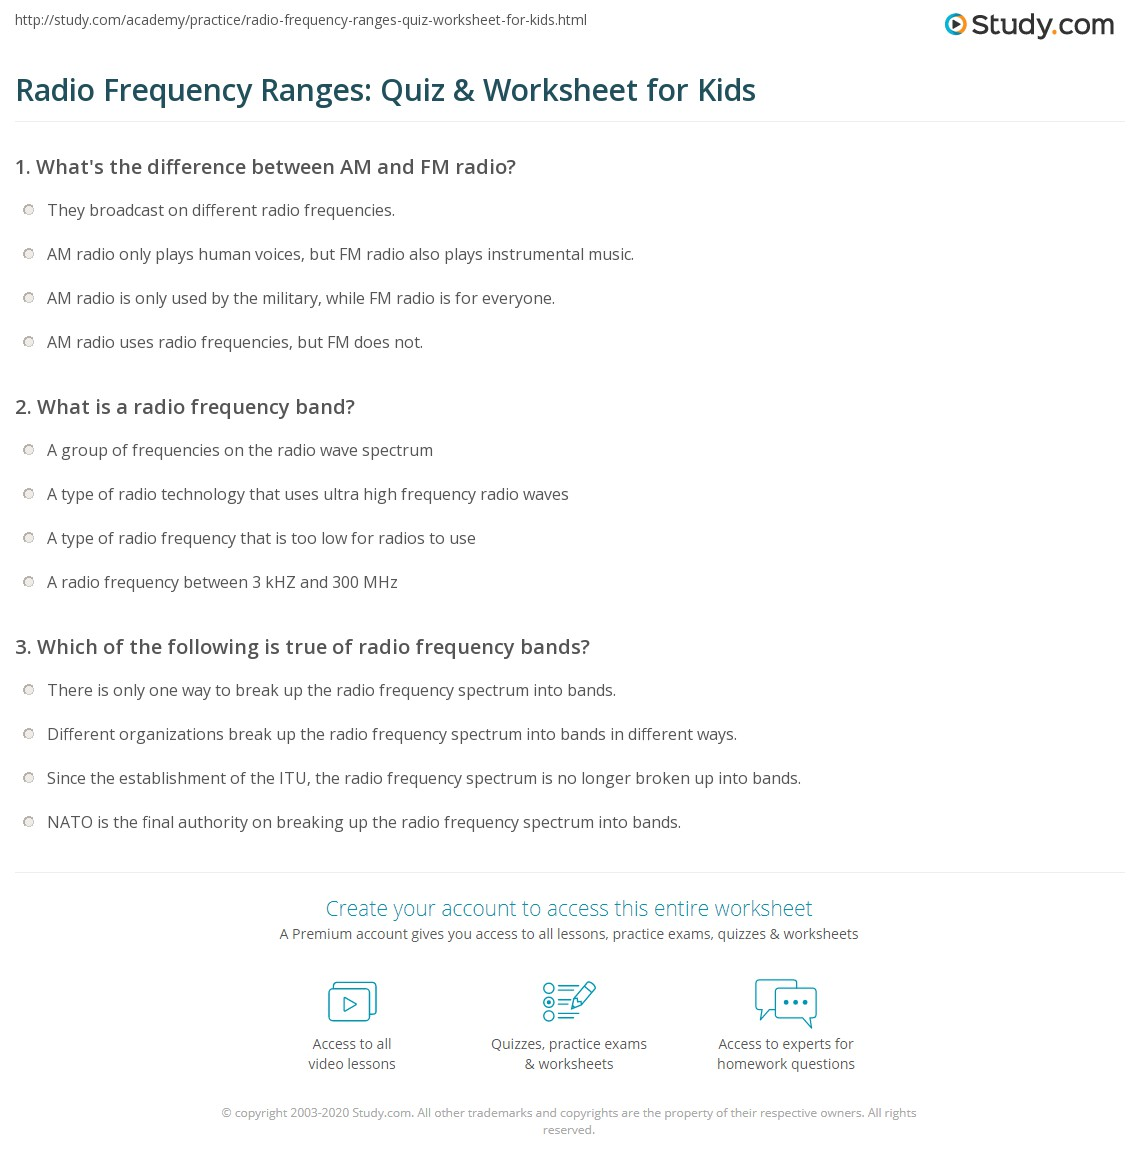 Radio Frequency Ranges: Quiz & Worksheet for Kids | Study com